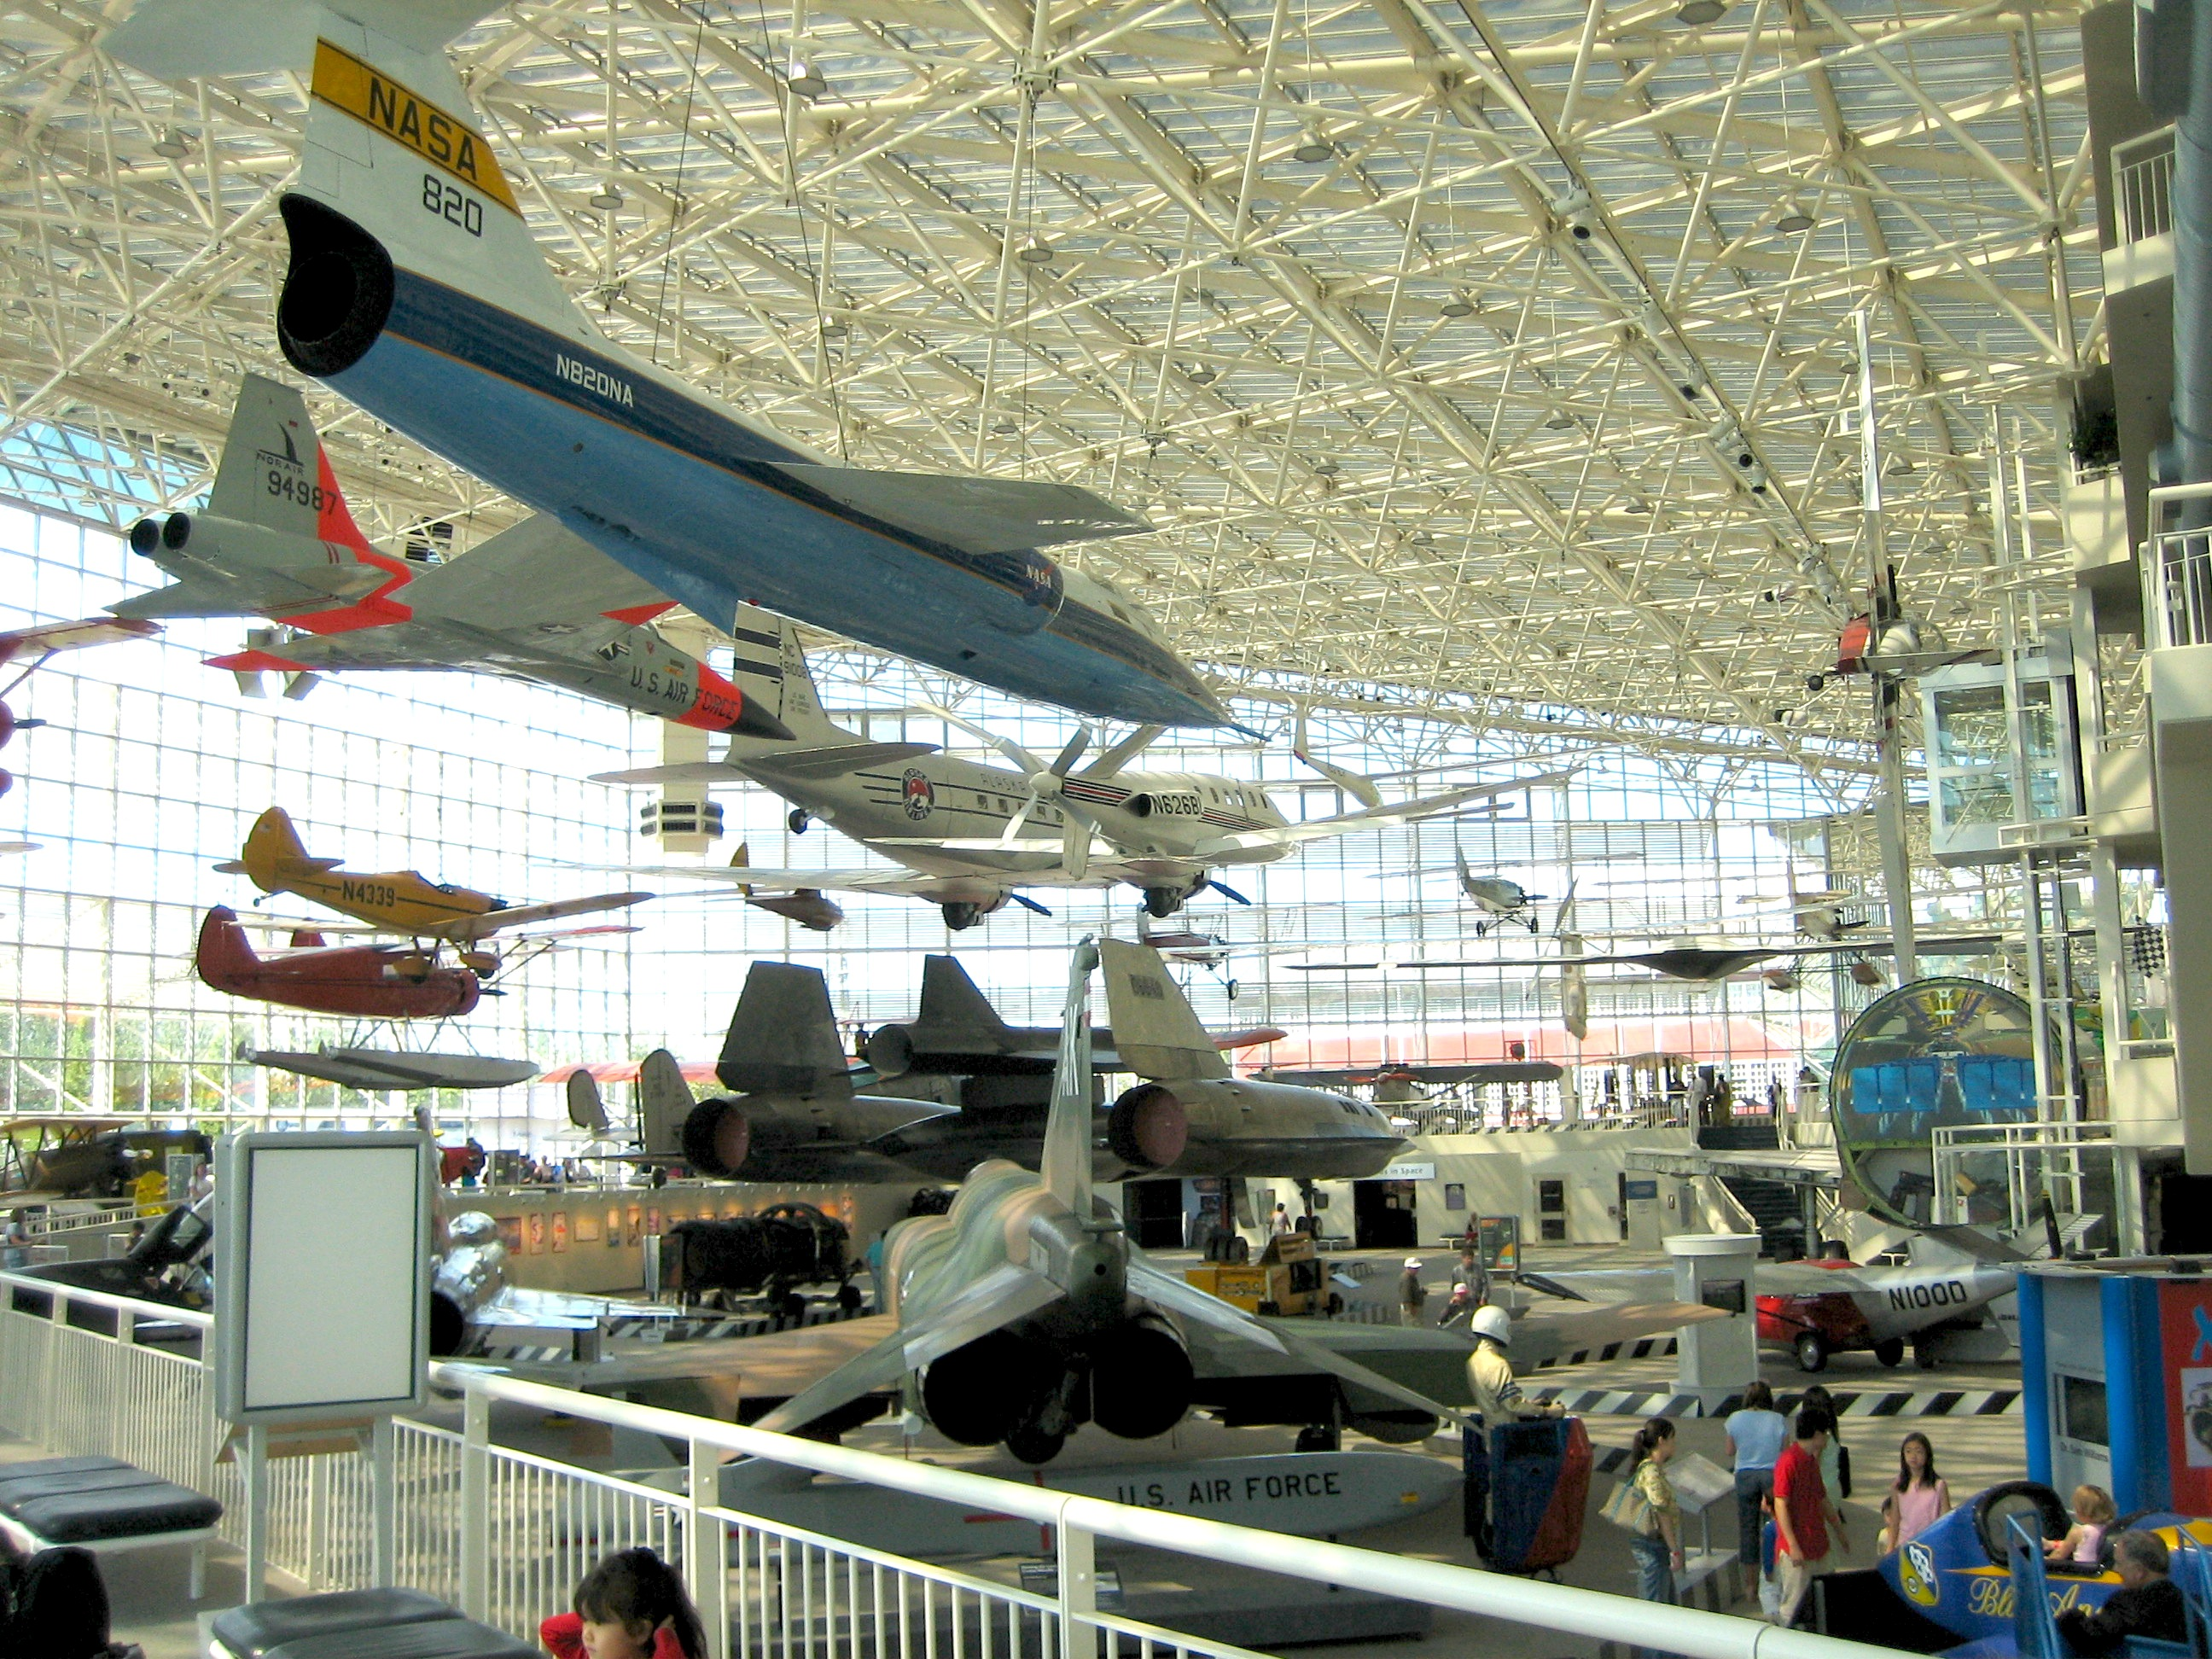 The main display area of the Museum of Flight, located at Boeing Field, Seattle, Washington. (Photo via Wikipedia)